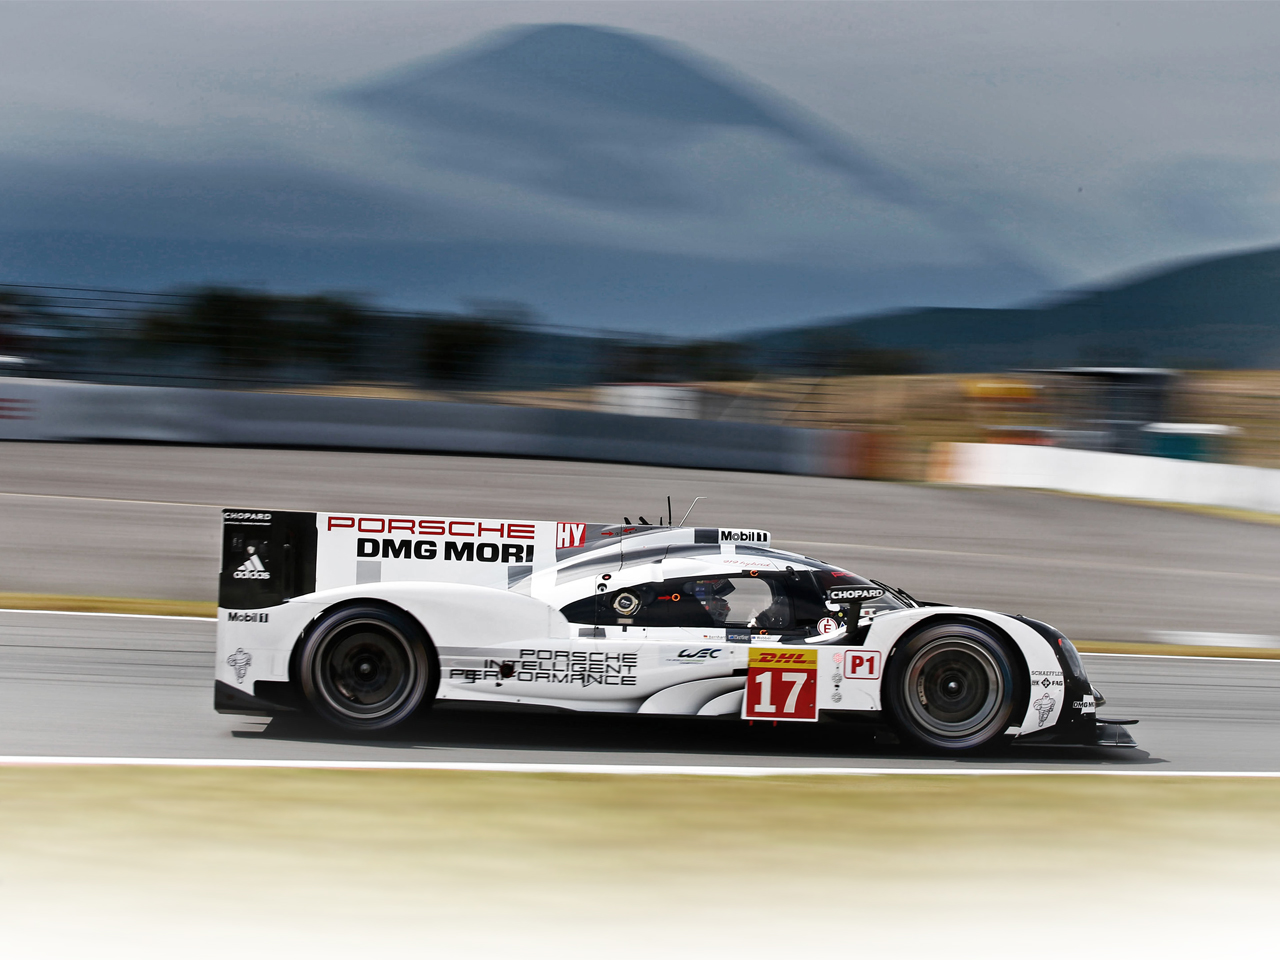 Porsche FIA WEC 6h of Fuji: The next step